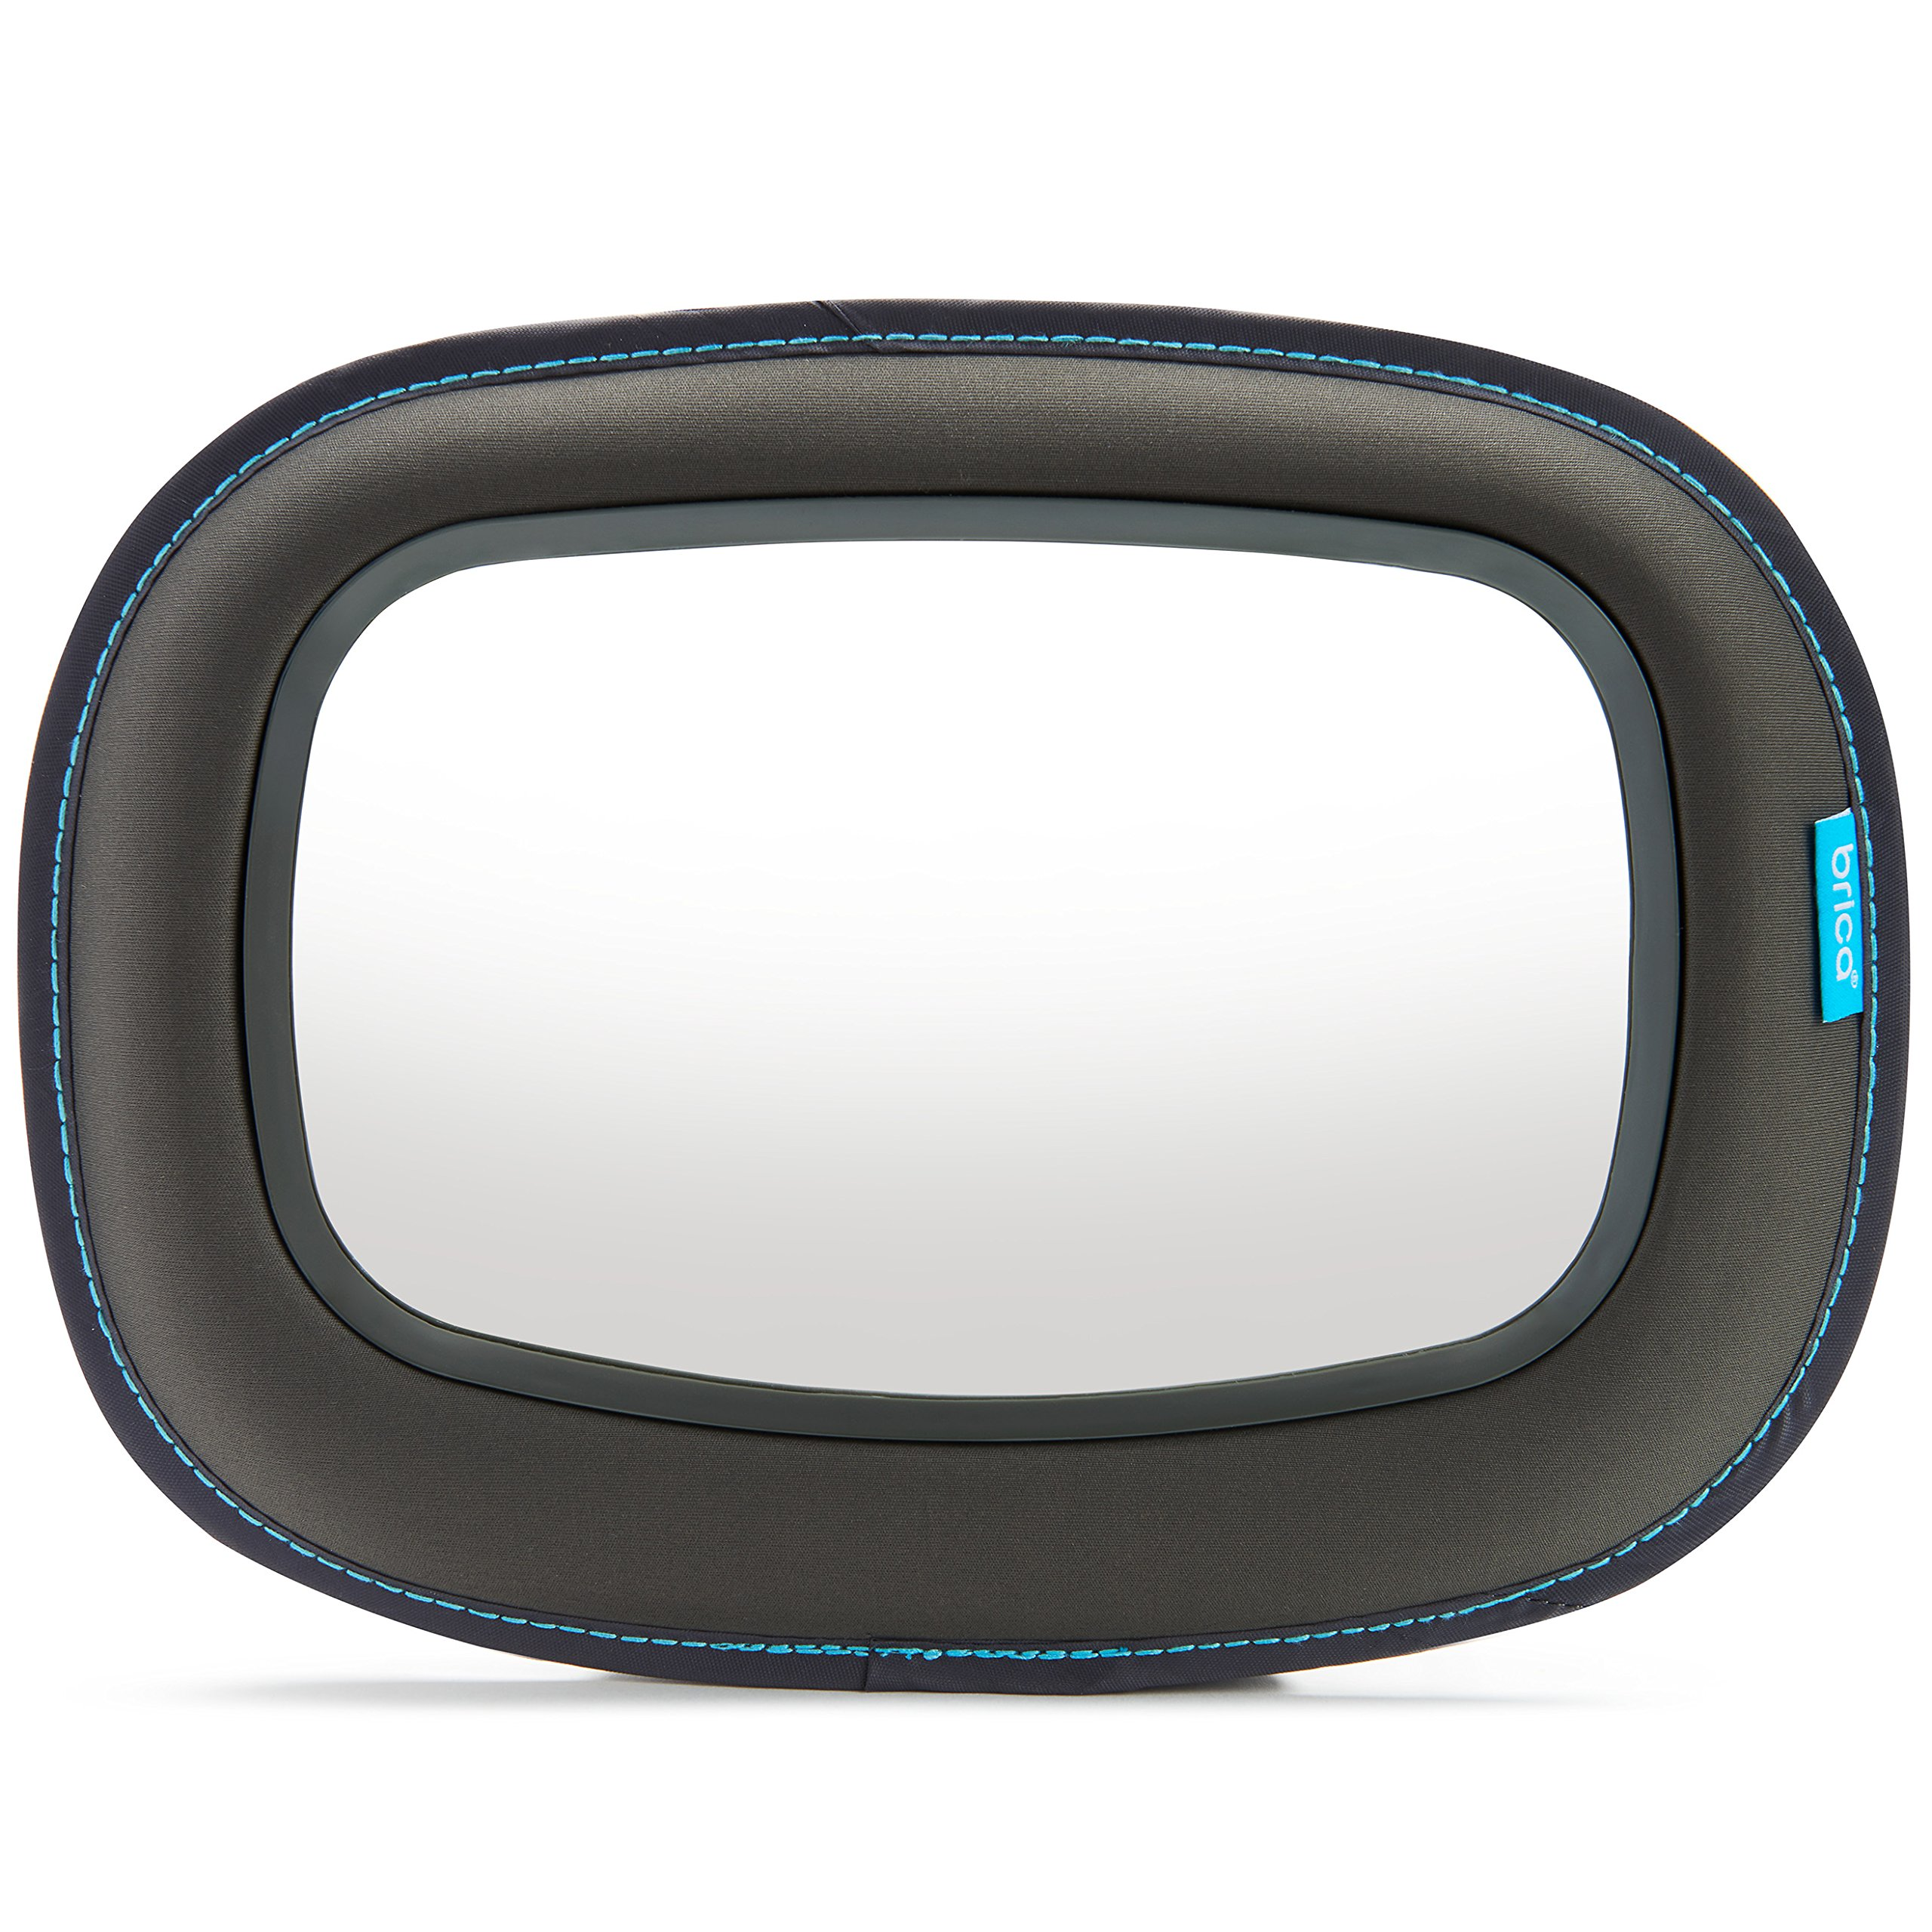 Brica Vivid Reflection Baby In-Sight Car Mirror, Crash Tested and Shatter Resistant by Brica (Image #1)